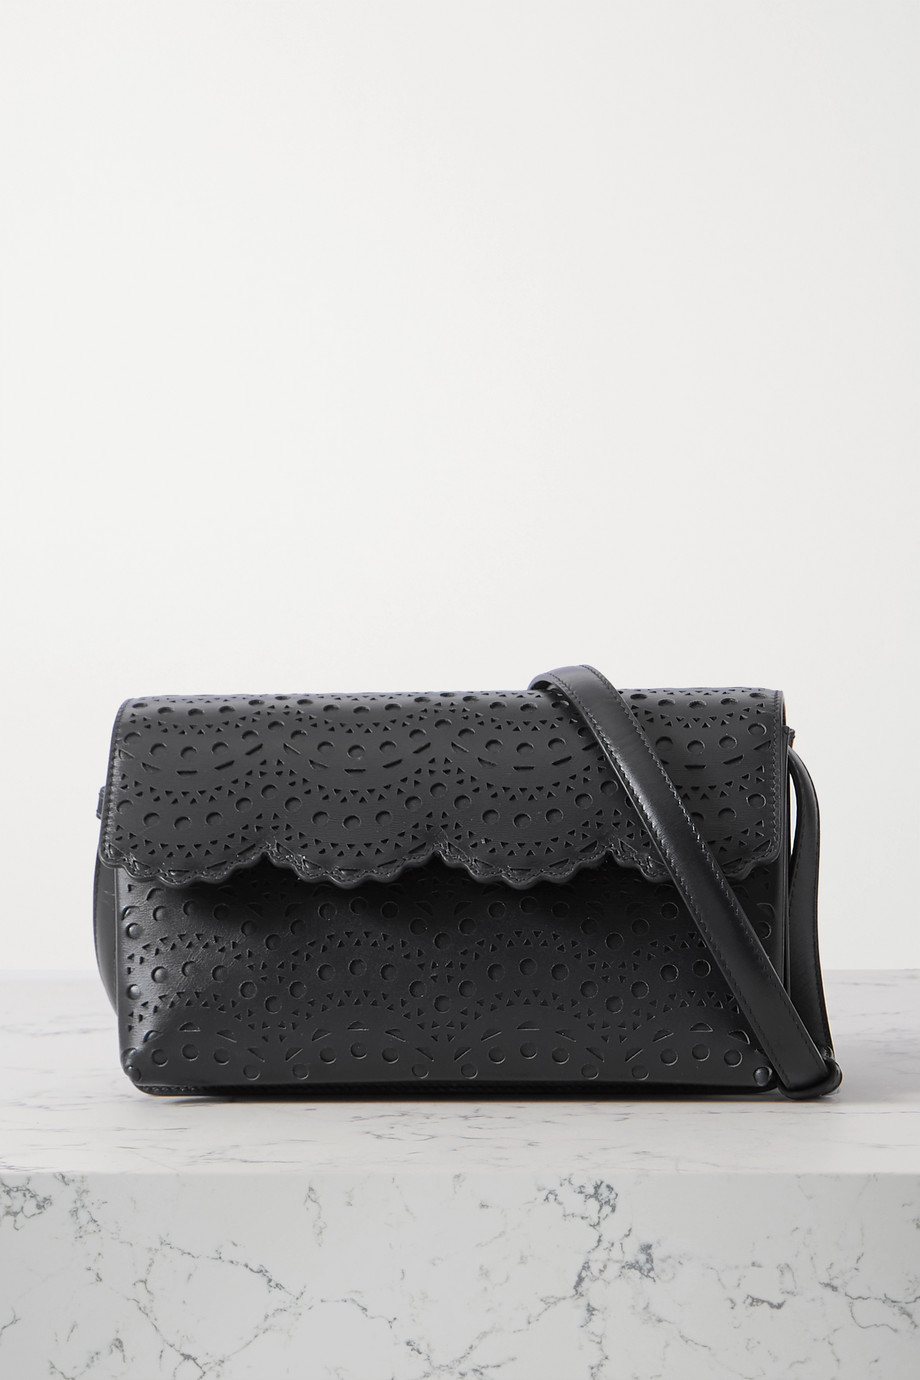 Alaïa Lulu medium laser-cut leather shoulder bag